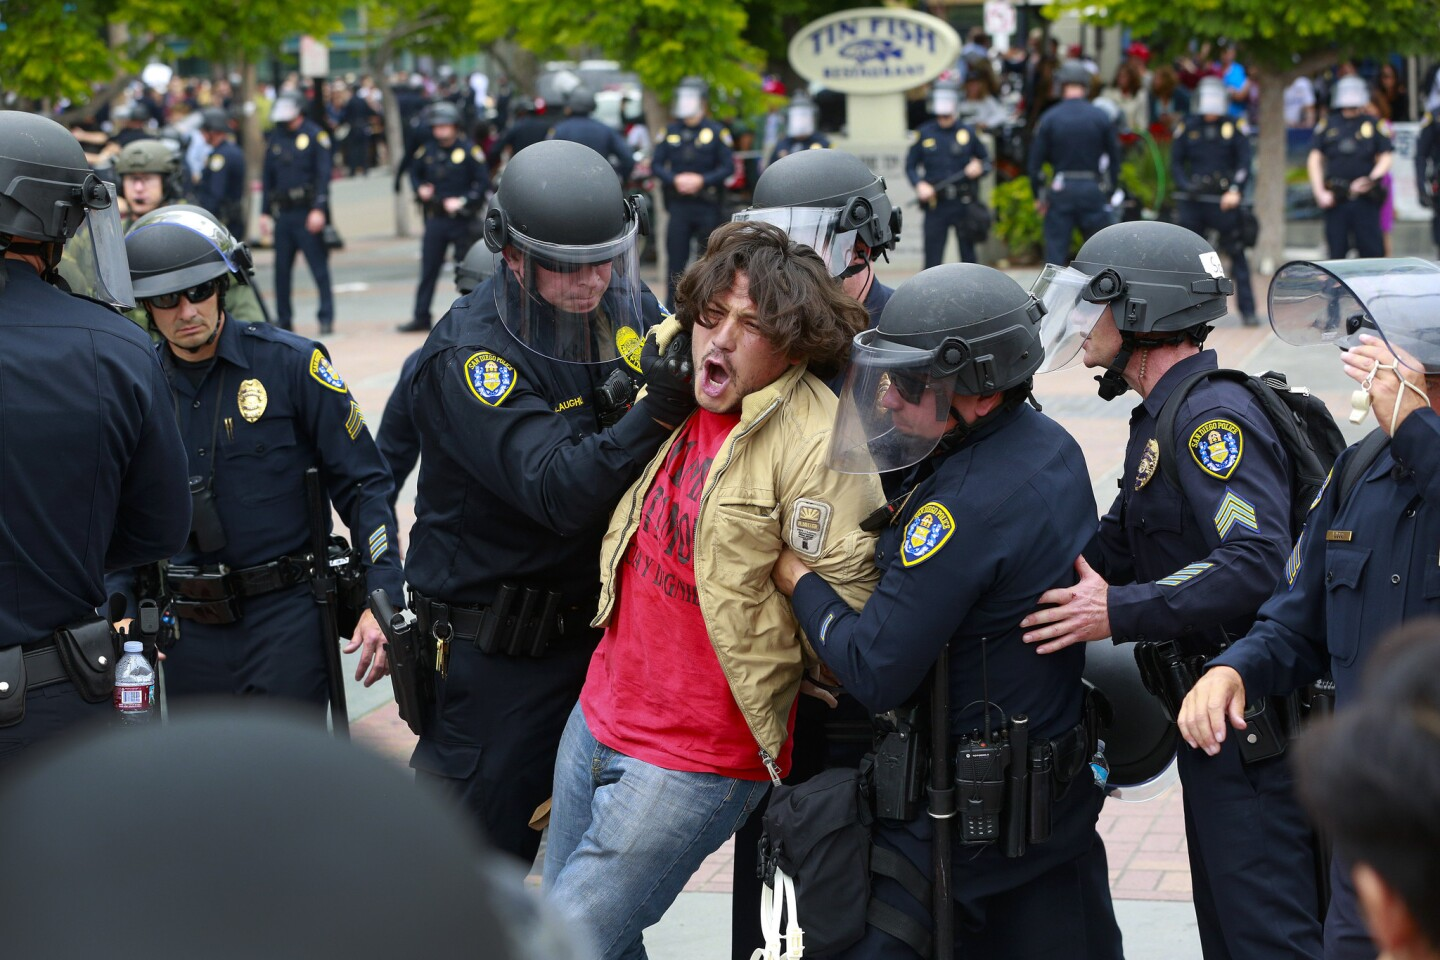 A protester who refused to comply with San Diego police officers in the Gaslamp Quarter was taken into custody on Friday.